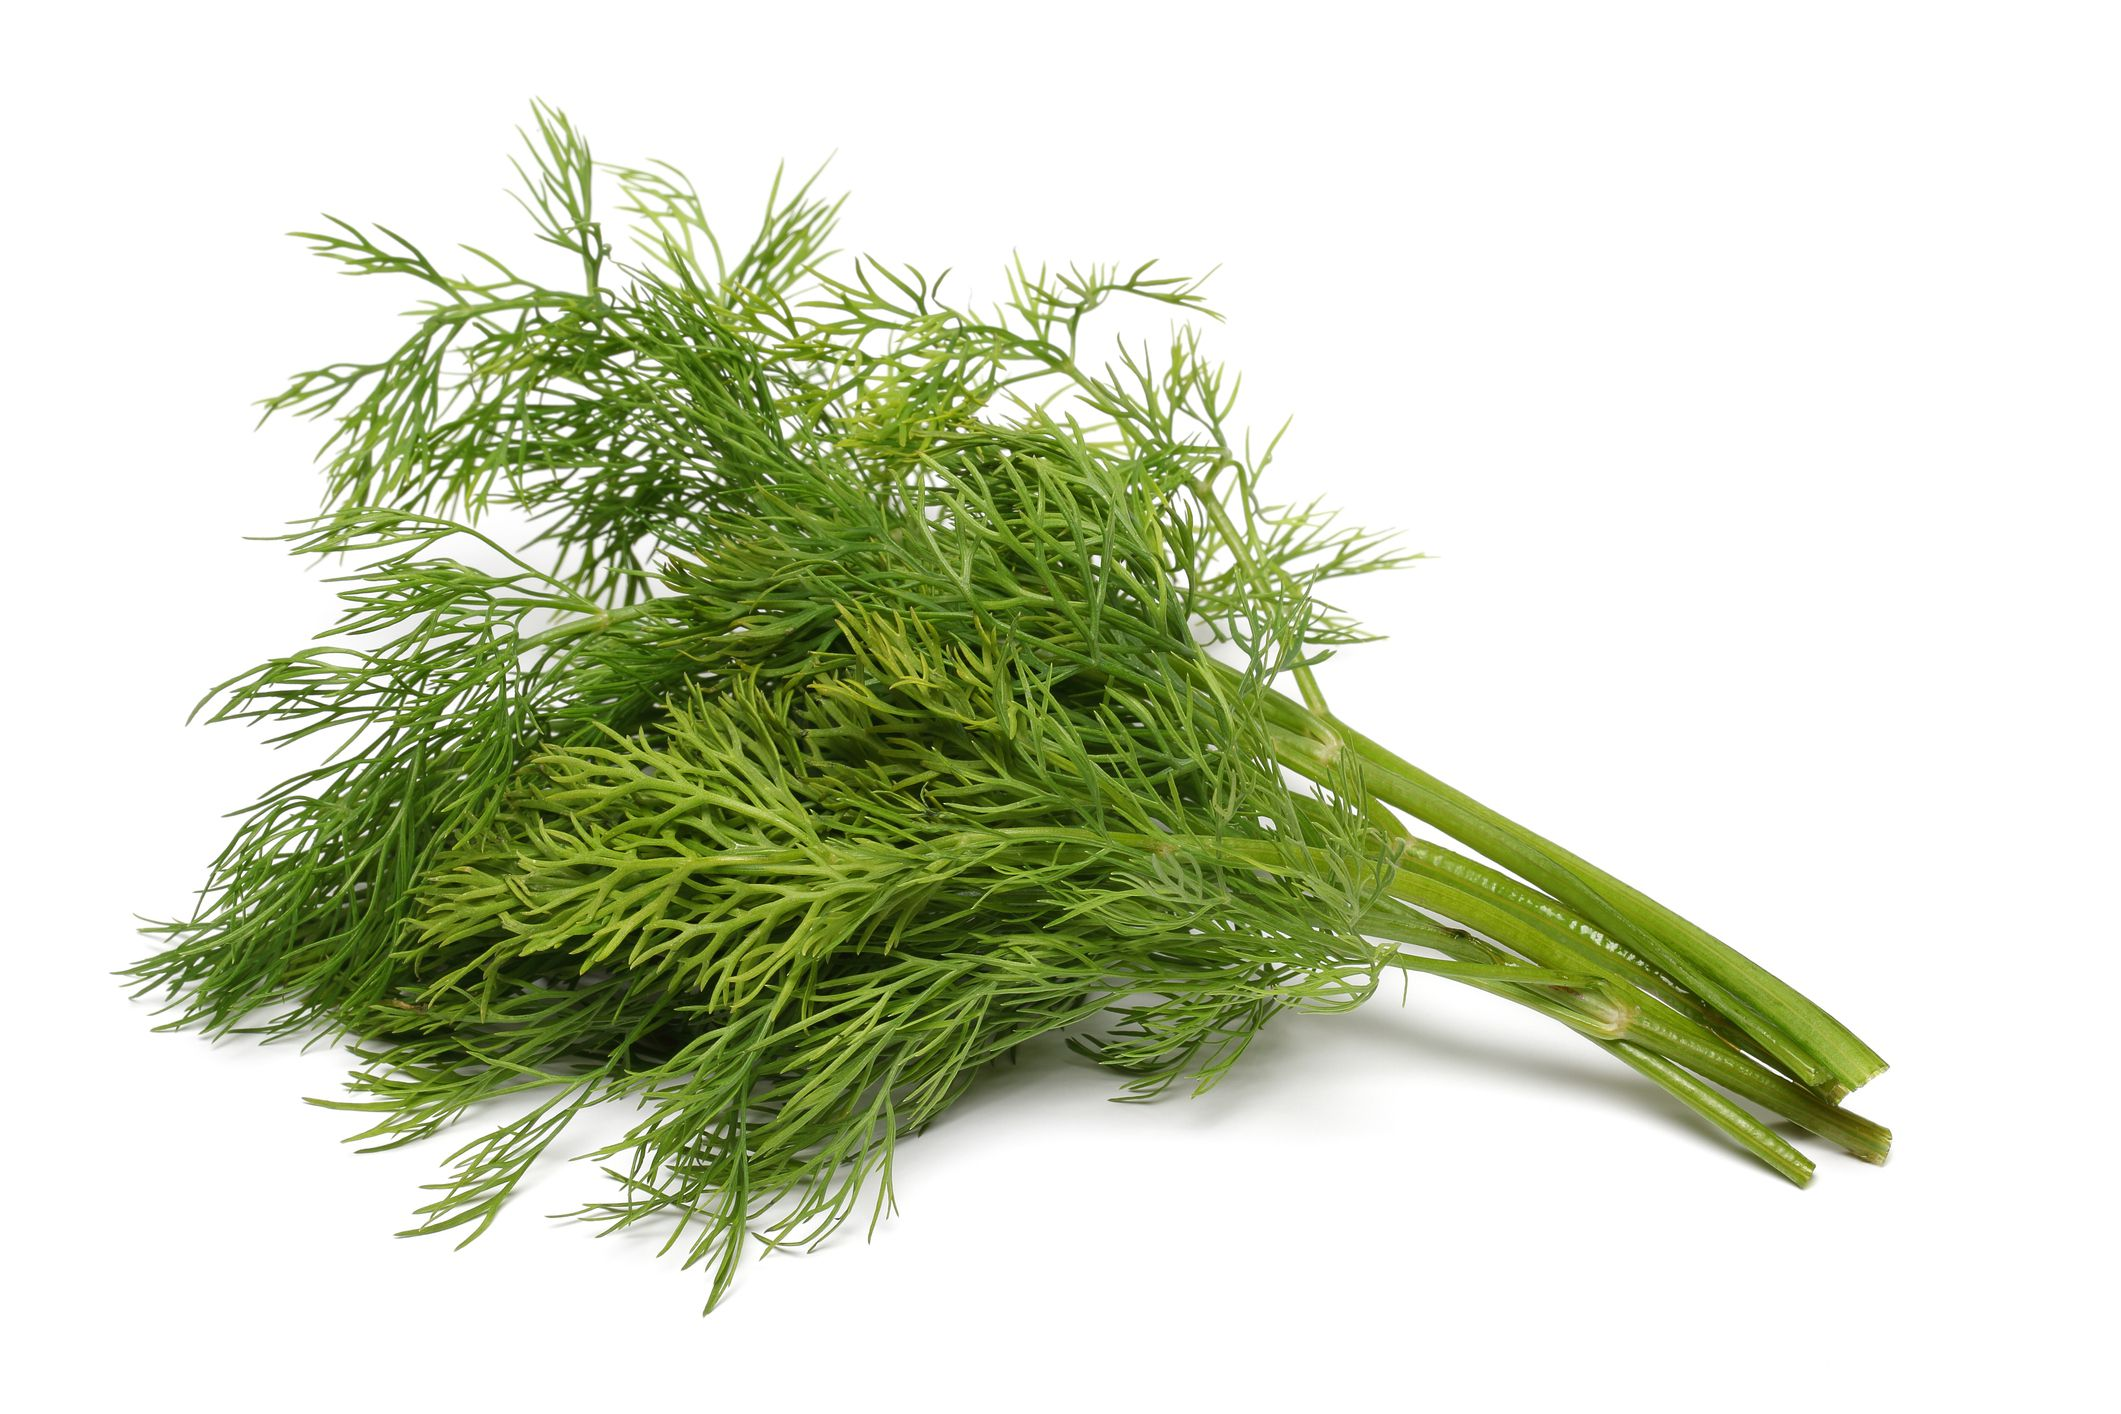 Kitchen Organizing Ideas How To Store Dill Weed And Seeds